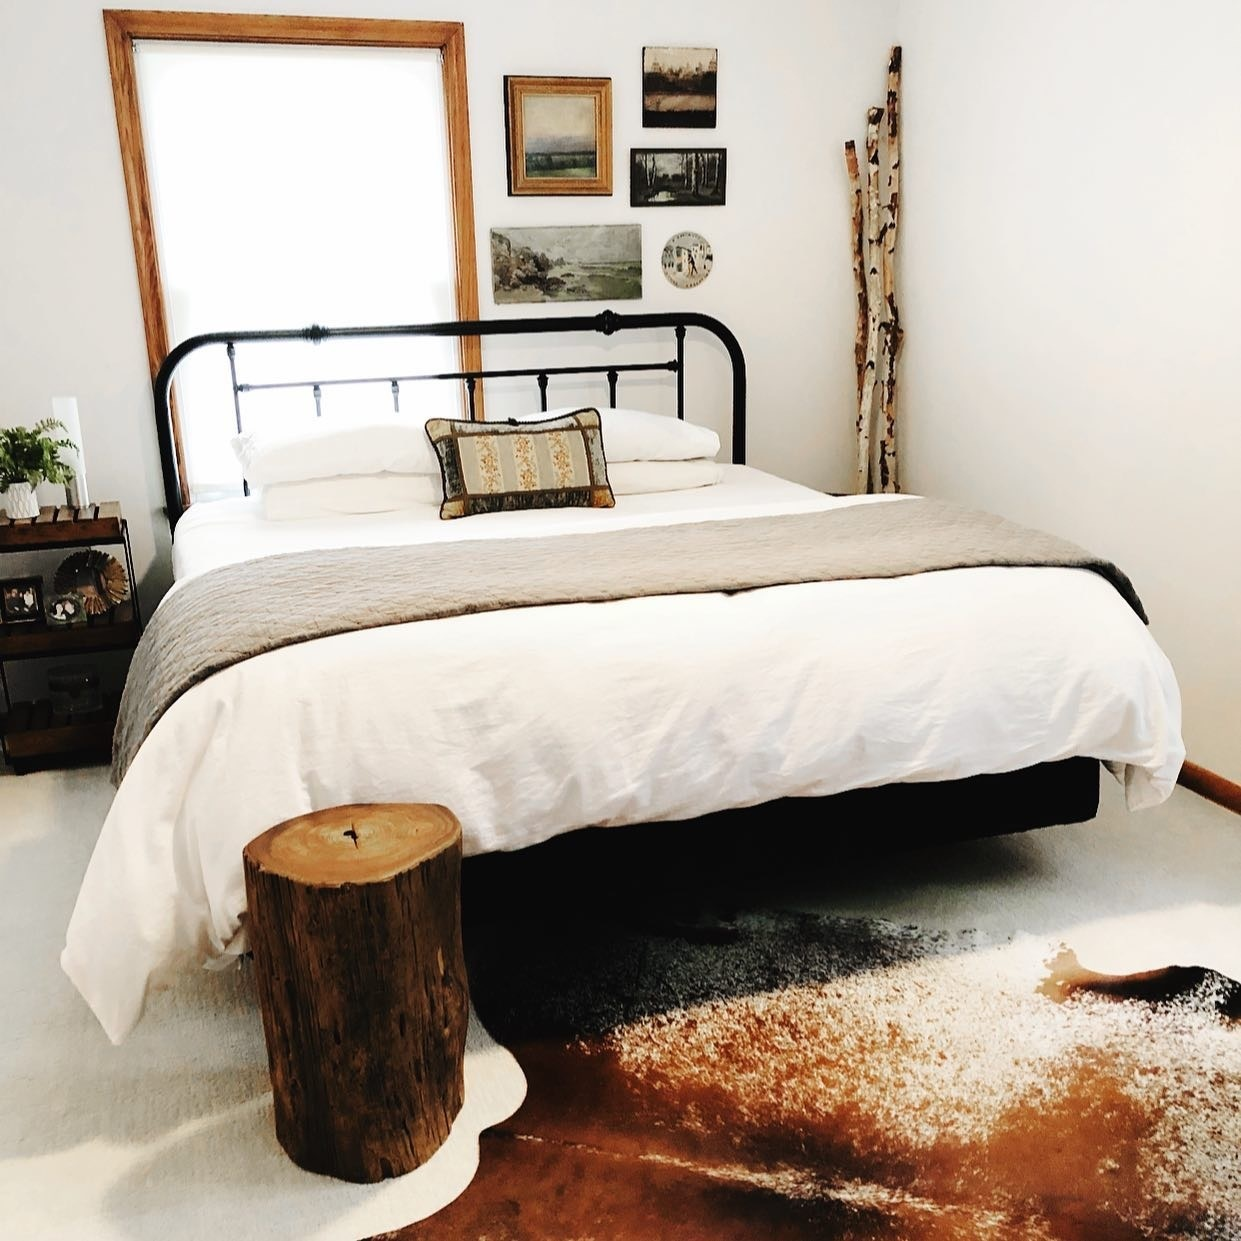 Will a cowhide rug work in my room?